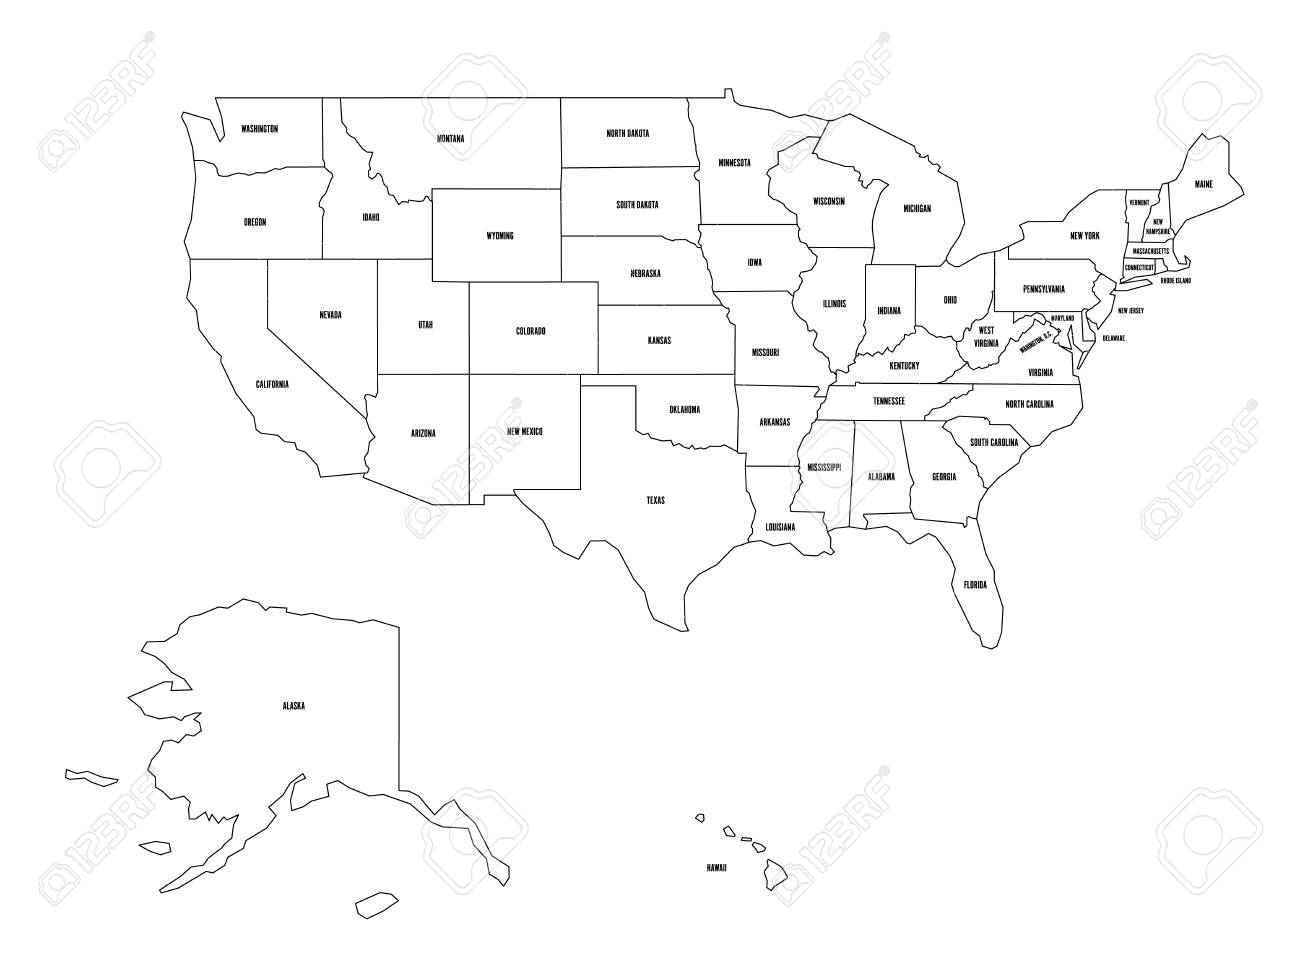 Map Of Us Simple Political Map Of United States Od America, USA. Simple Flat Black